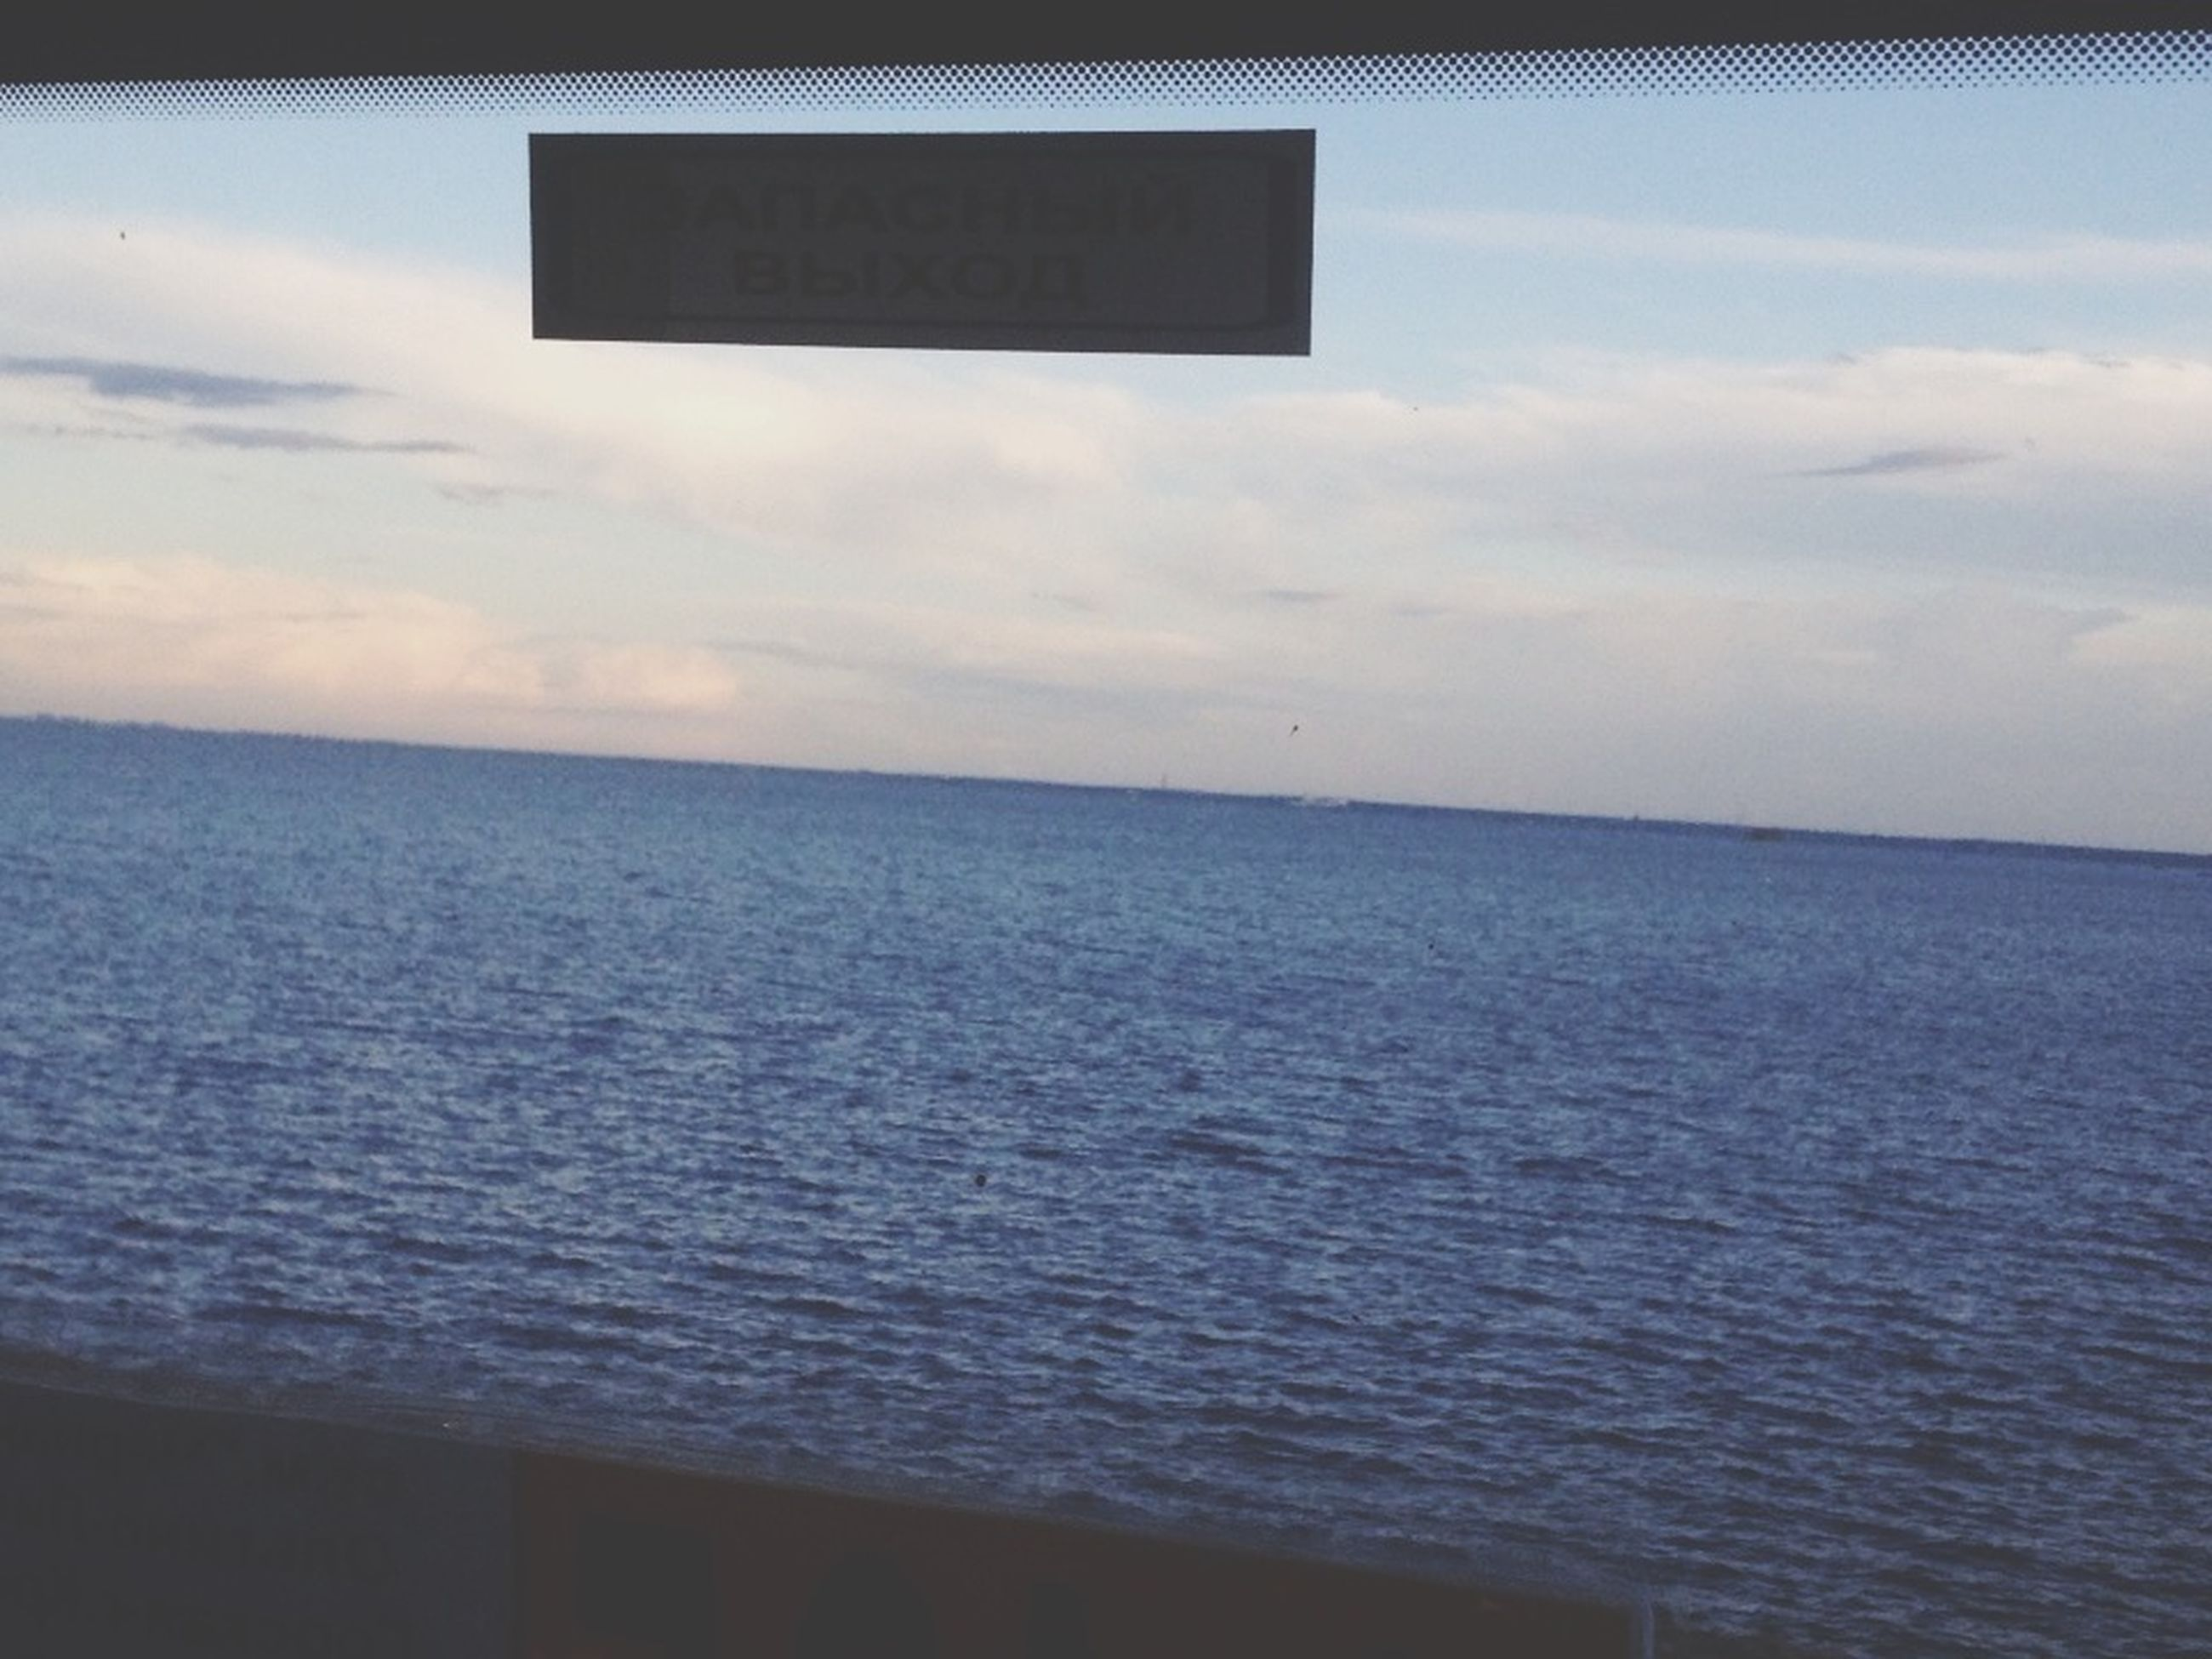 sea, sky, water, text, horizon over water, tranquil scene, tranquility, western script, communication, scenics, cloud - sky, nature, beauty in nature, cloud, outdoors, no people, rippled, idyllic, sign, waterfront